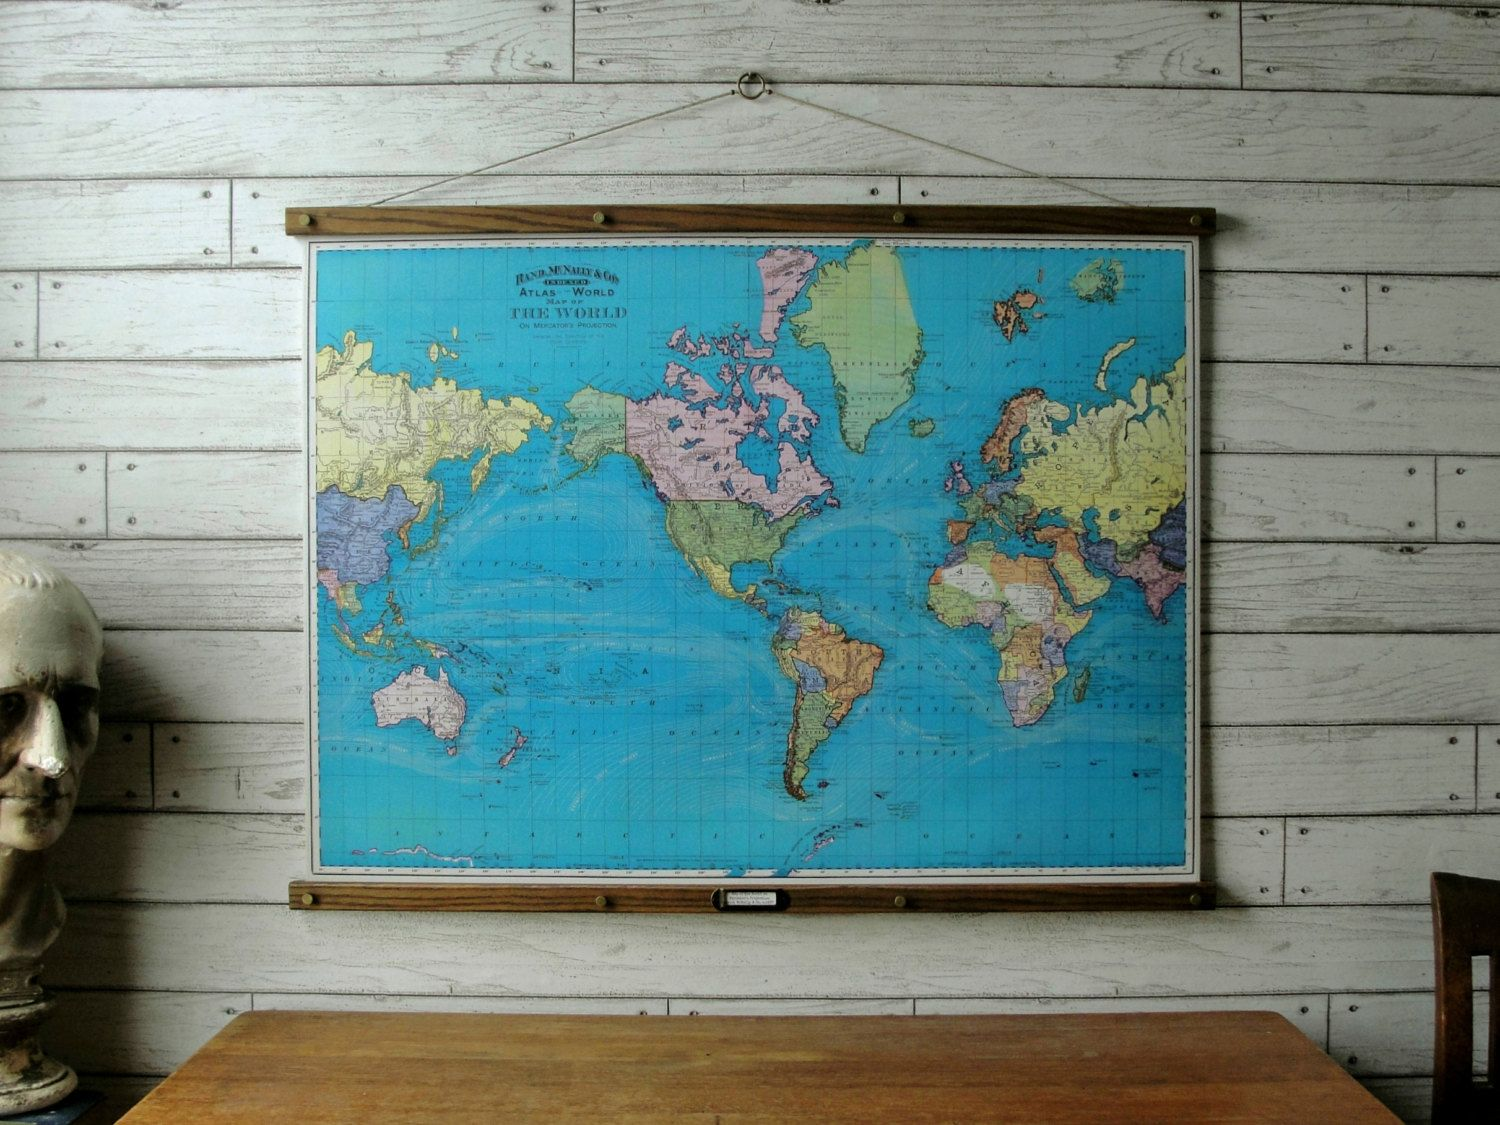 World map 1897 vintage pull down school map chart reproduction vintage world map pull down reproduction with by grittycitygoods gumiabroncs Images